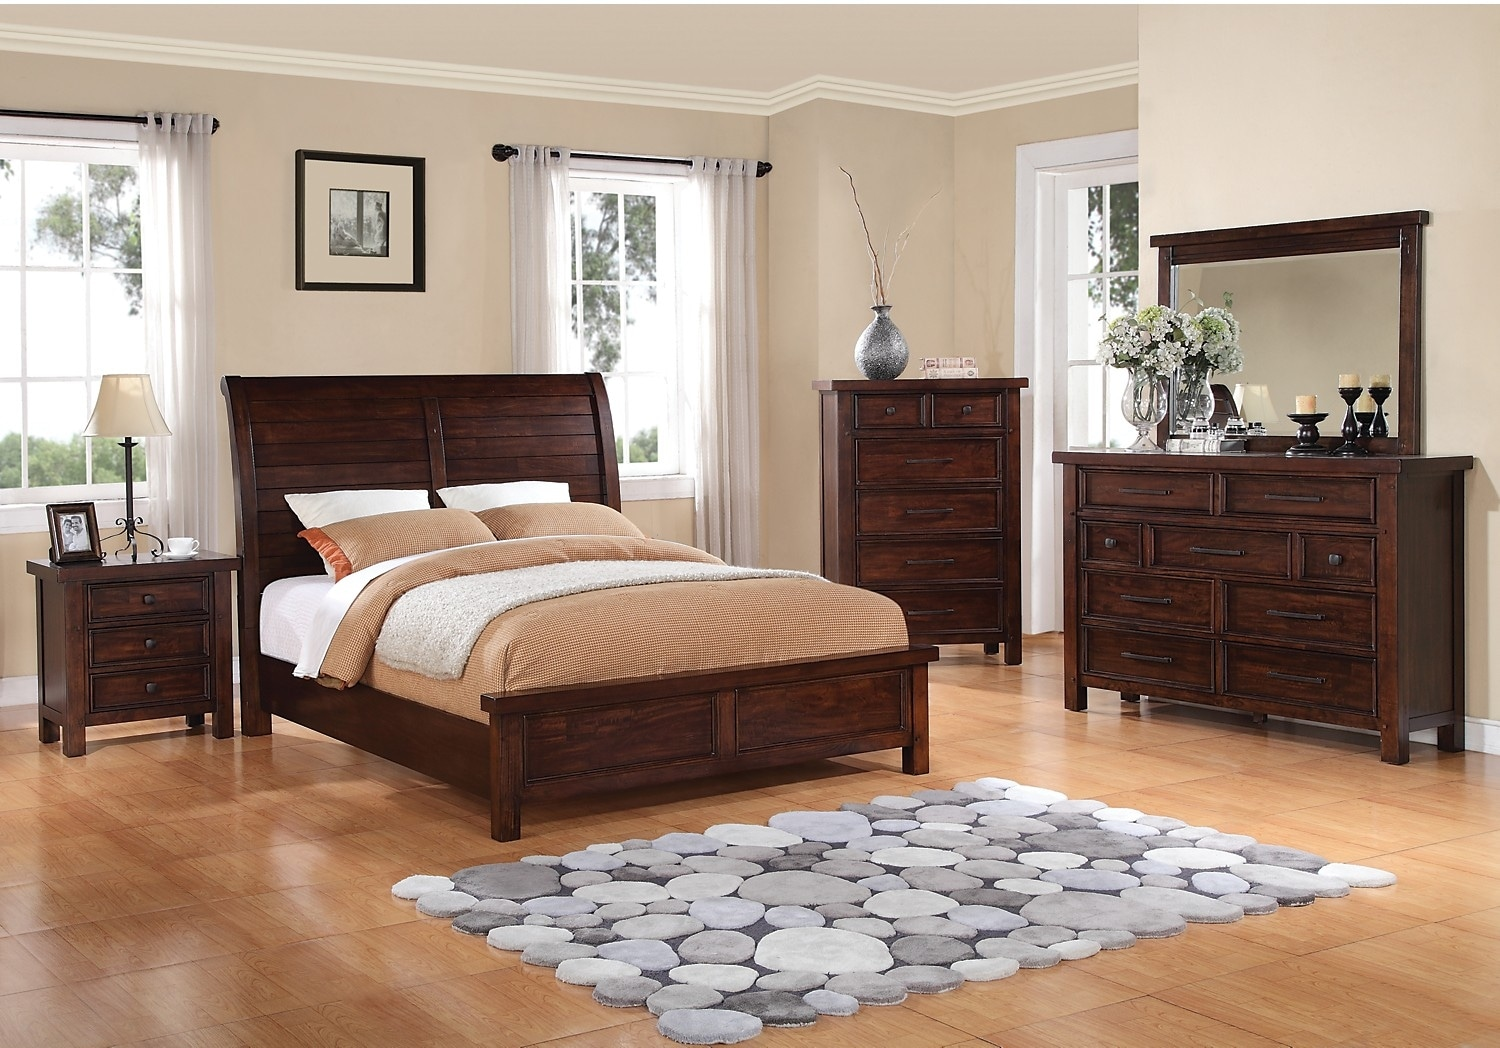 Mango Wood Bedroom Furniture Sonoma 8 Piece Queen Bedroom Package Burnished Mango The Brick